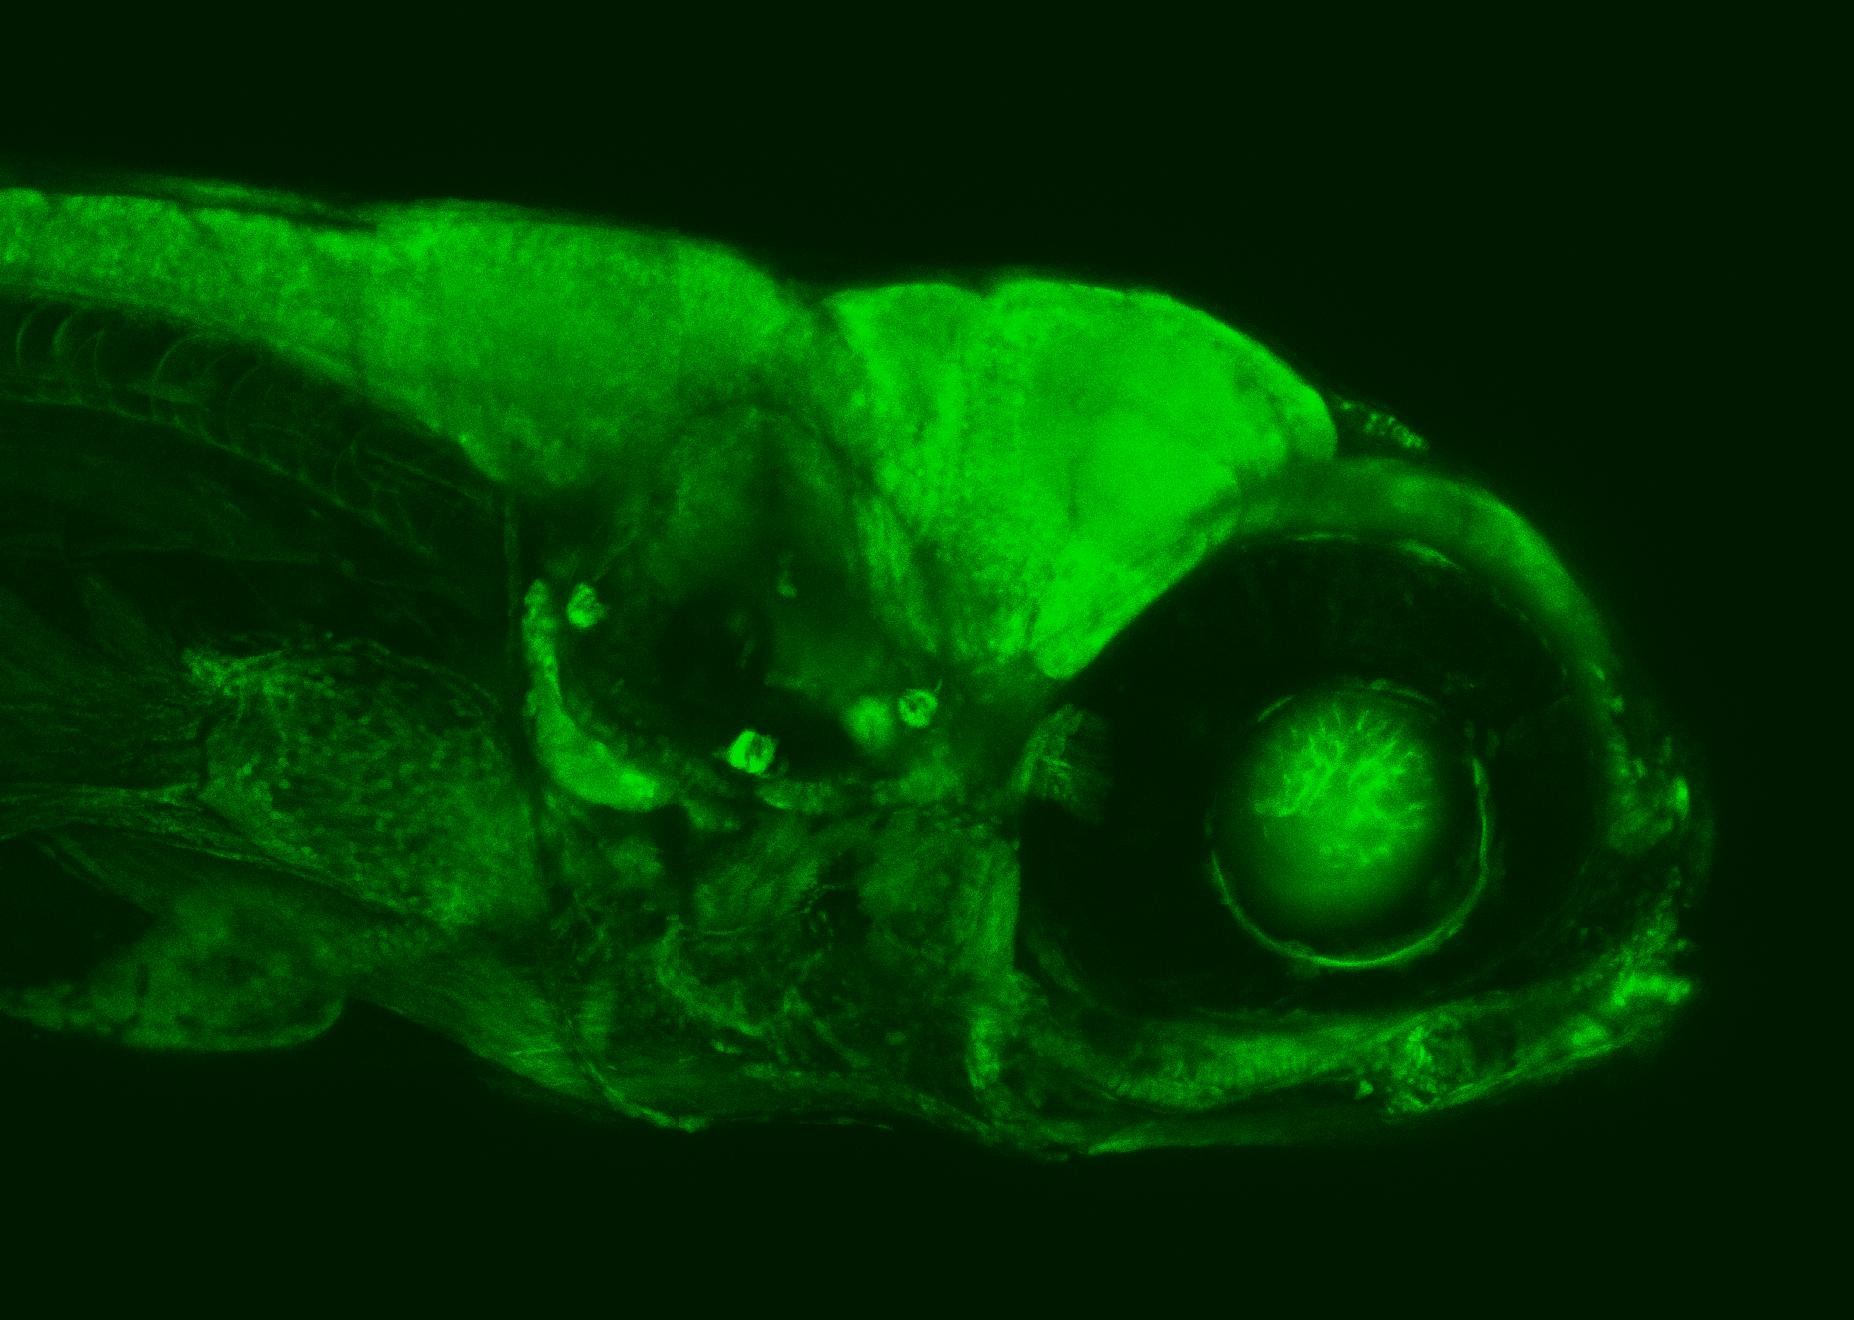 6 day old zebrafish larva under the confocal microscope. Image: Aristides Arrenberg